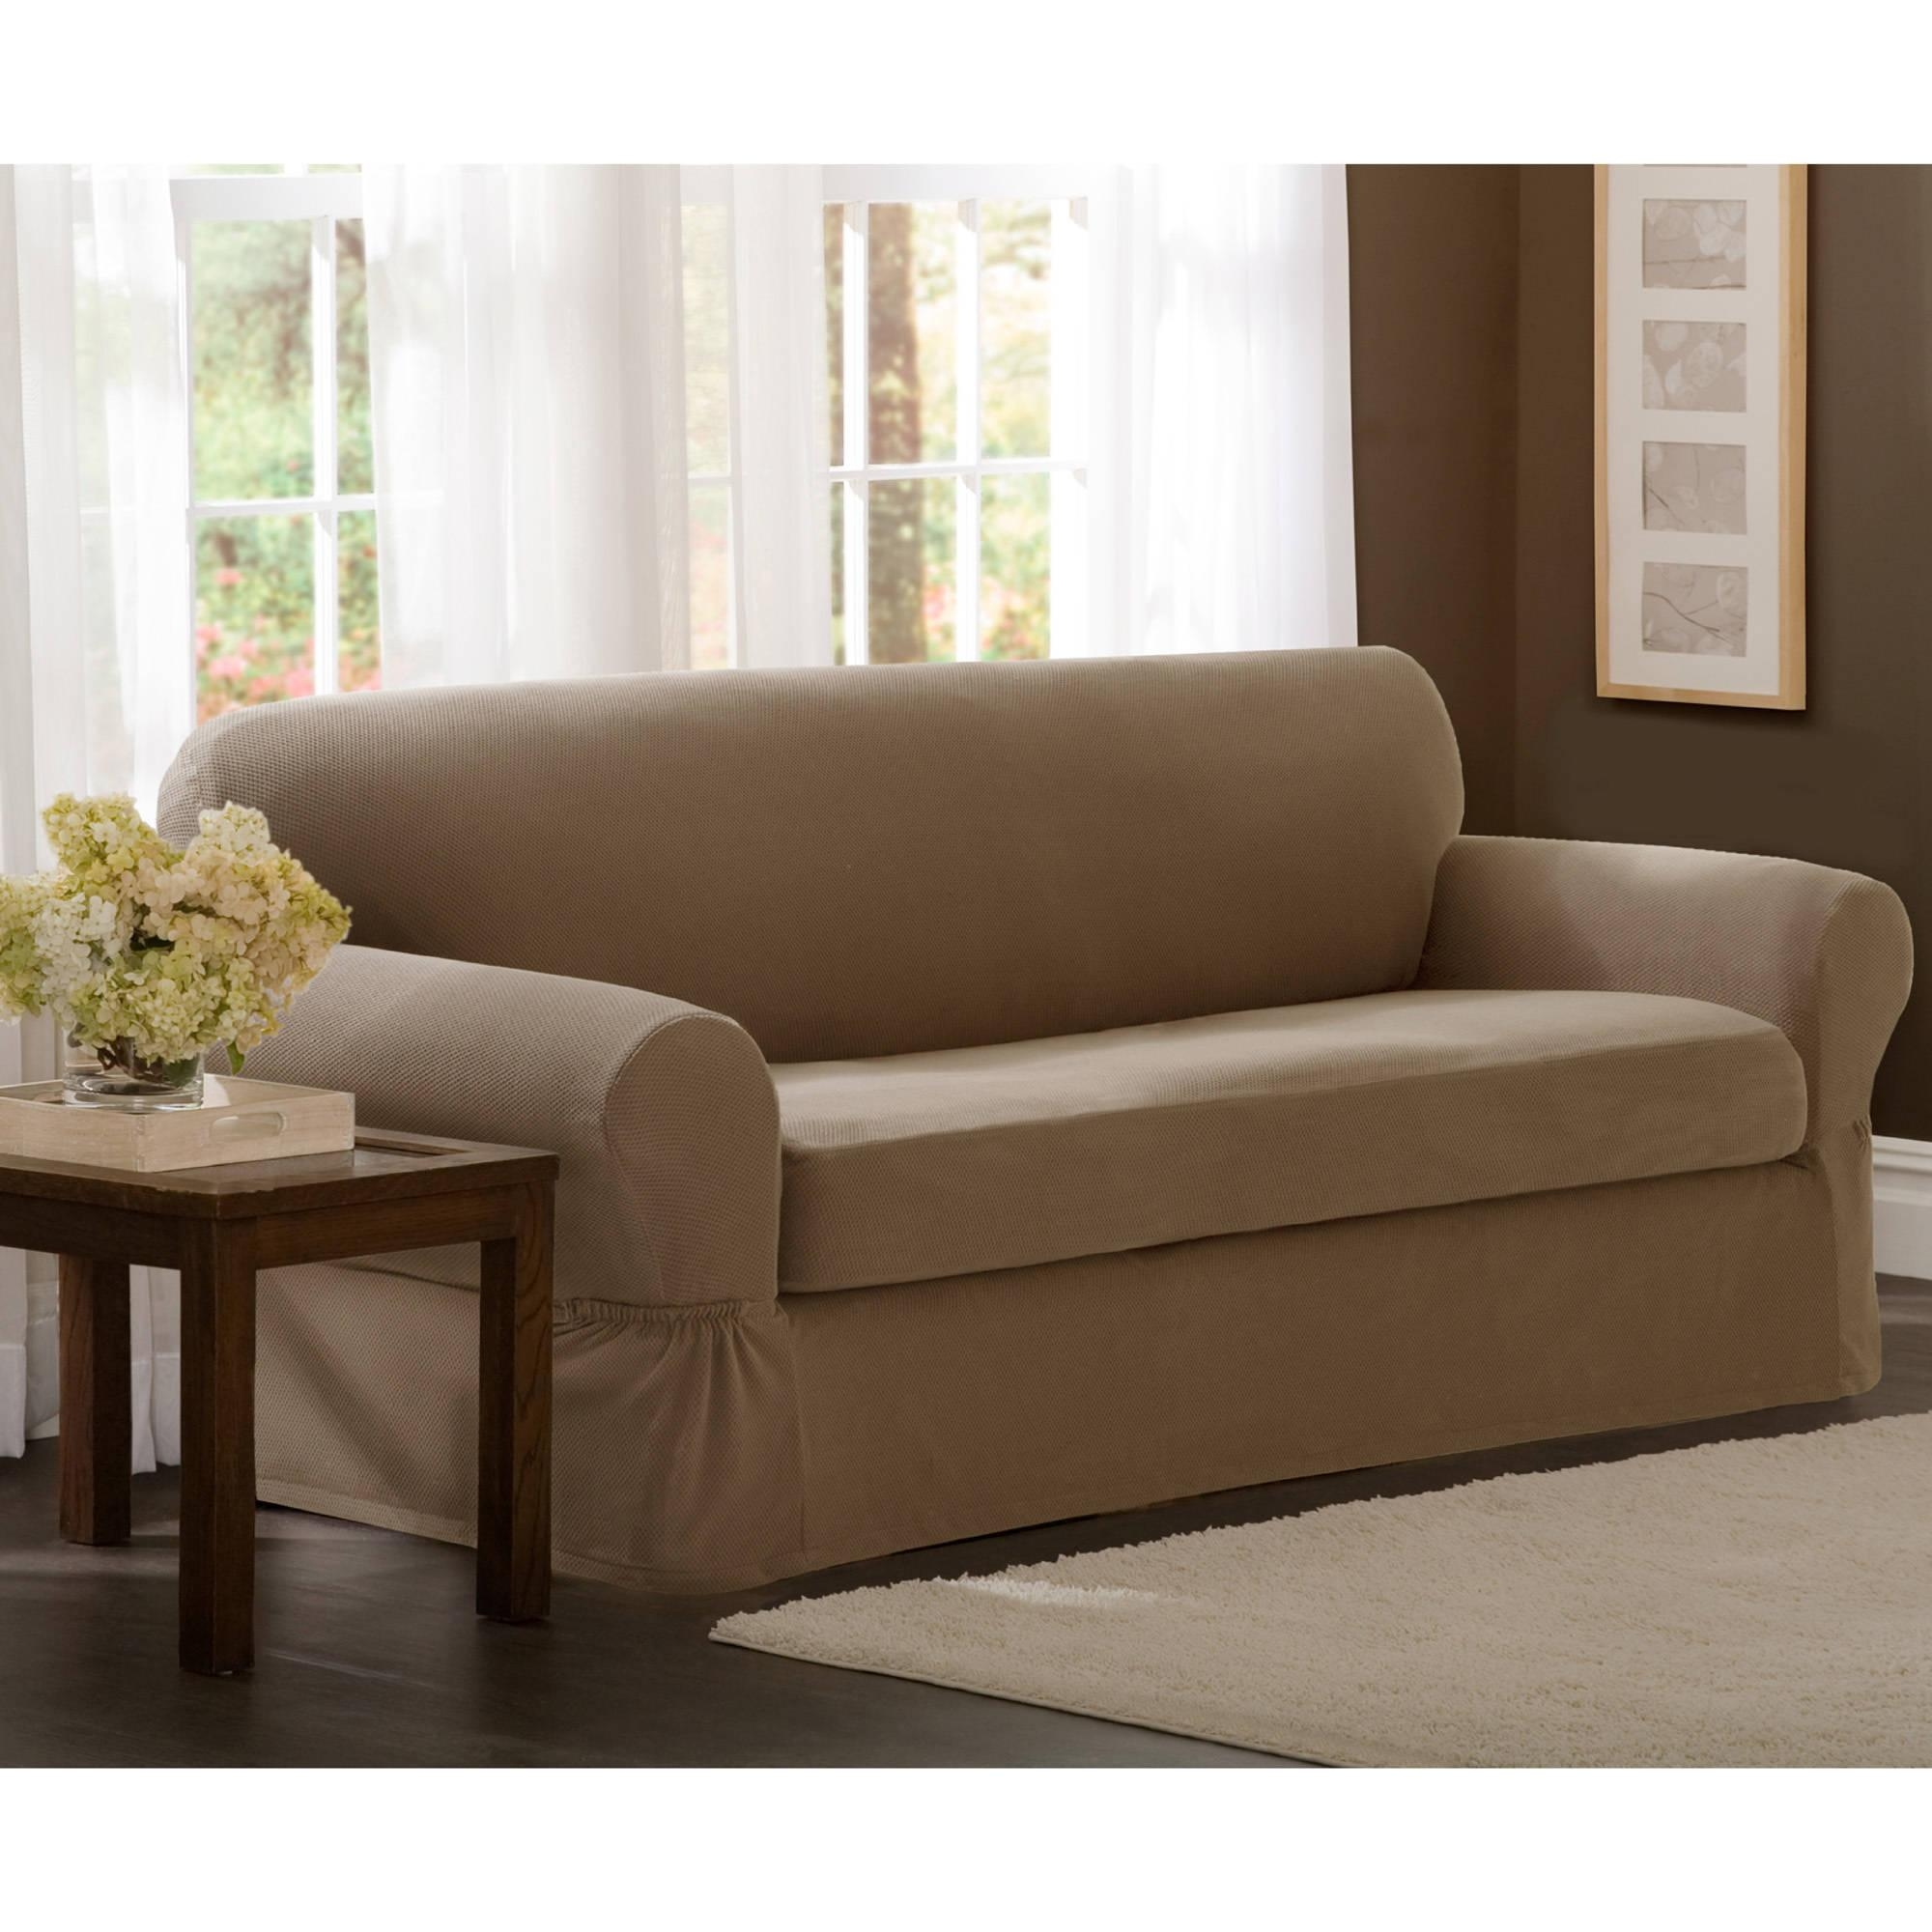 Maytex Stretch 2 Piece Sofa Slipcover – Walmart Intended For 2 Piece Sofas (Image 11 of 20)